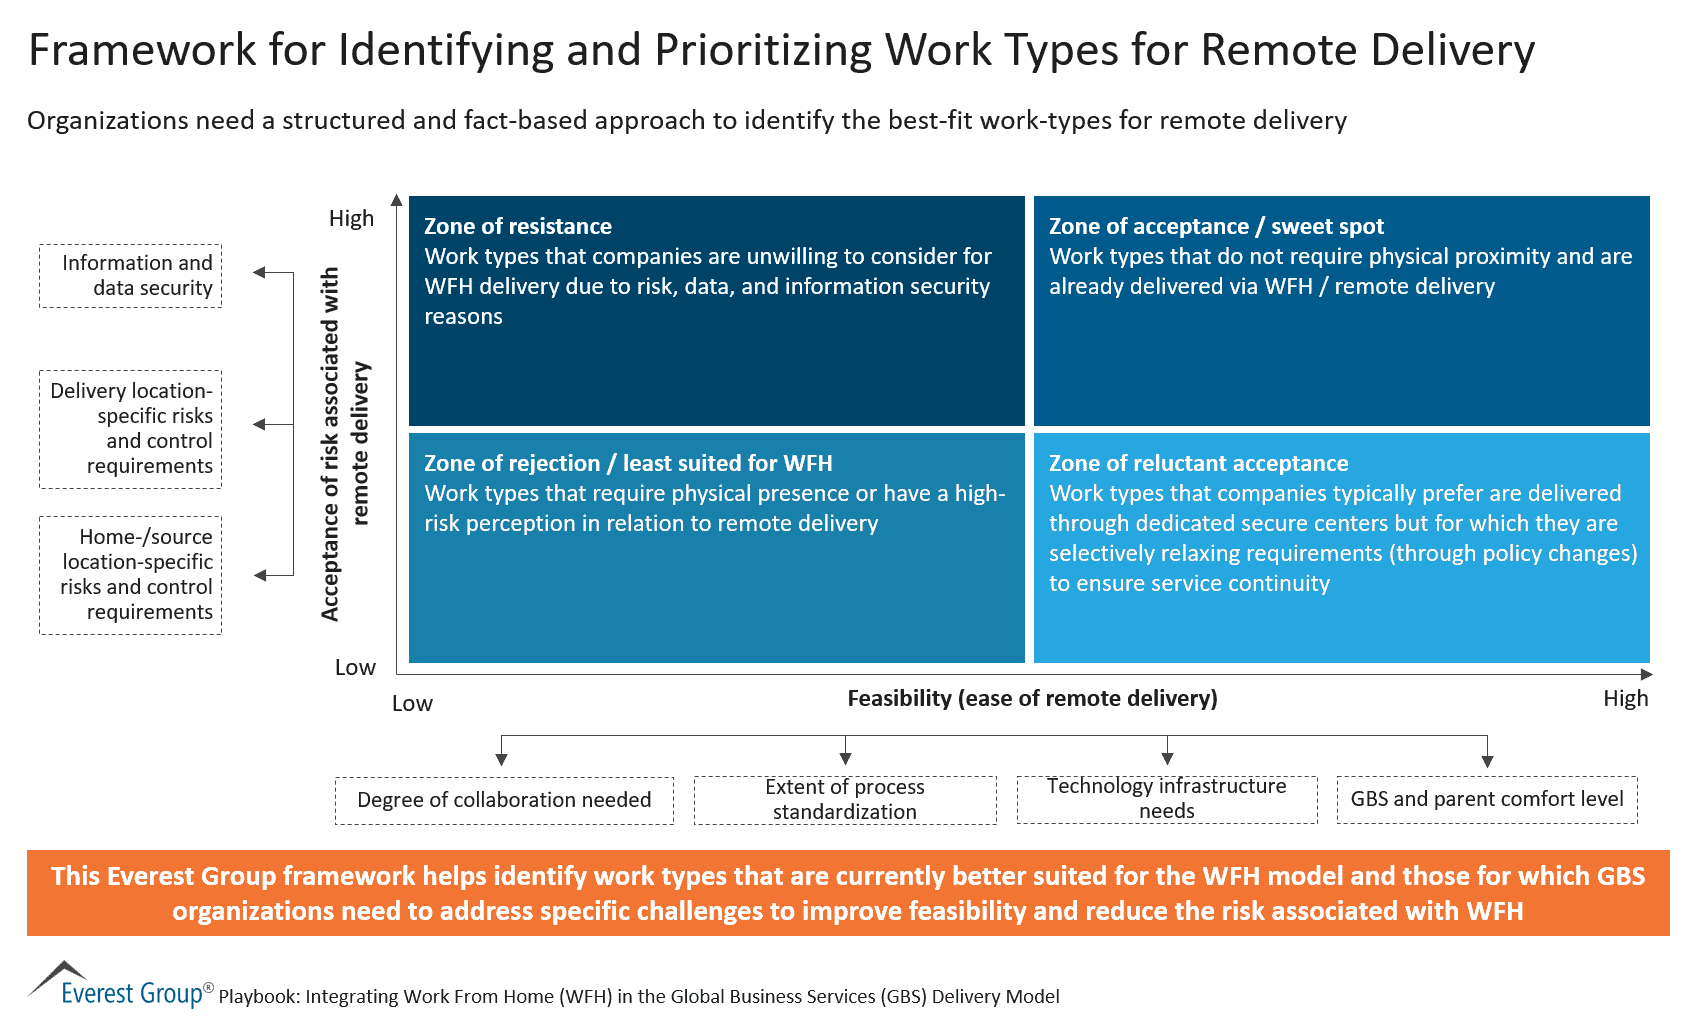 Framework for Identifying and Prioritizing Work Types for Remote Delivery